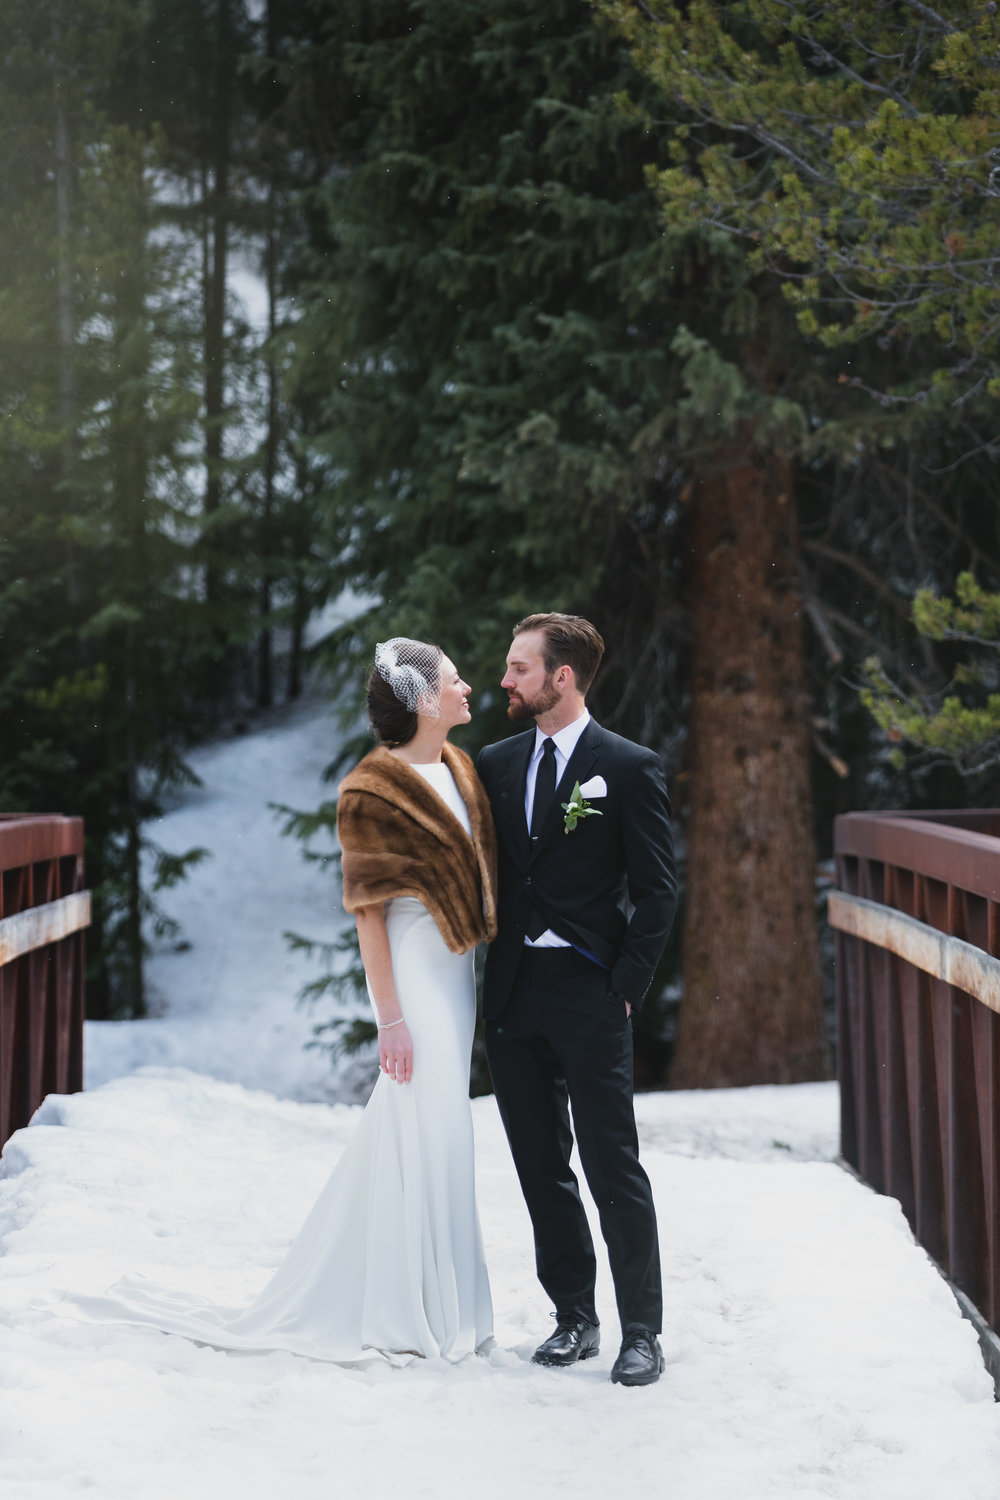 vild-photography-photographer-colorado-intimate-wedding-adventure-Stephanie- Adam-452.jpg